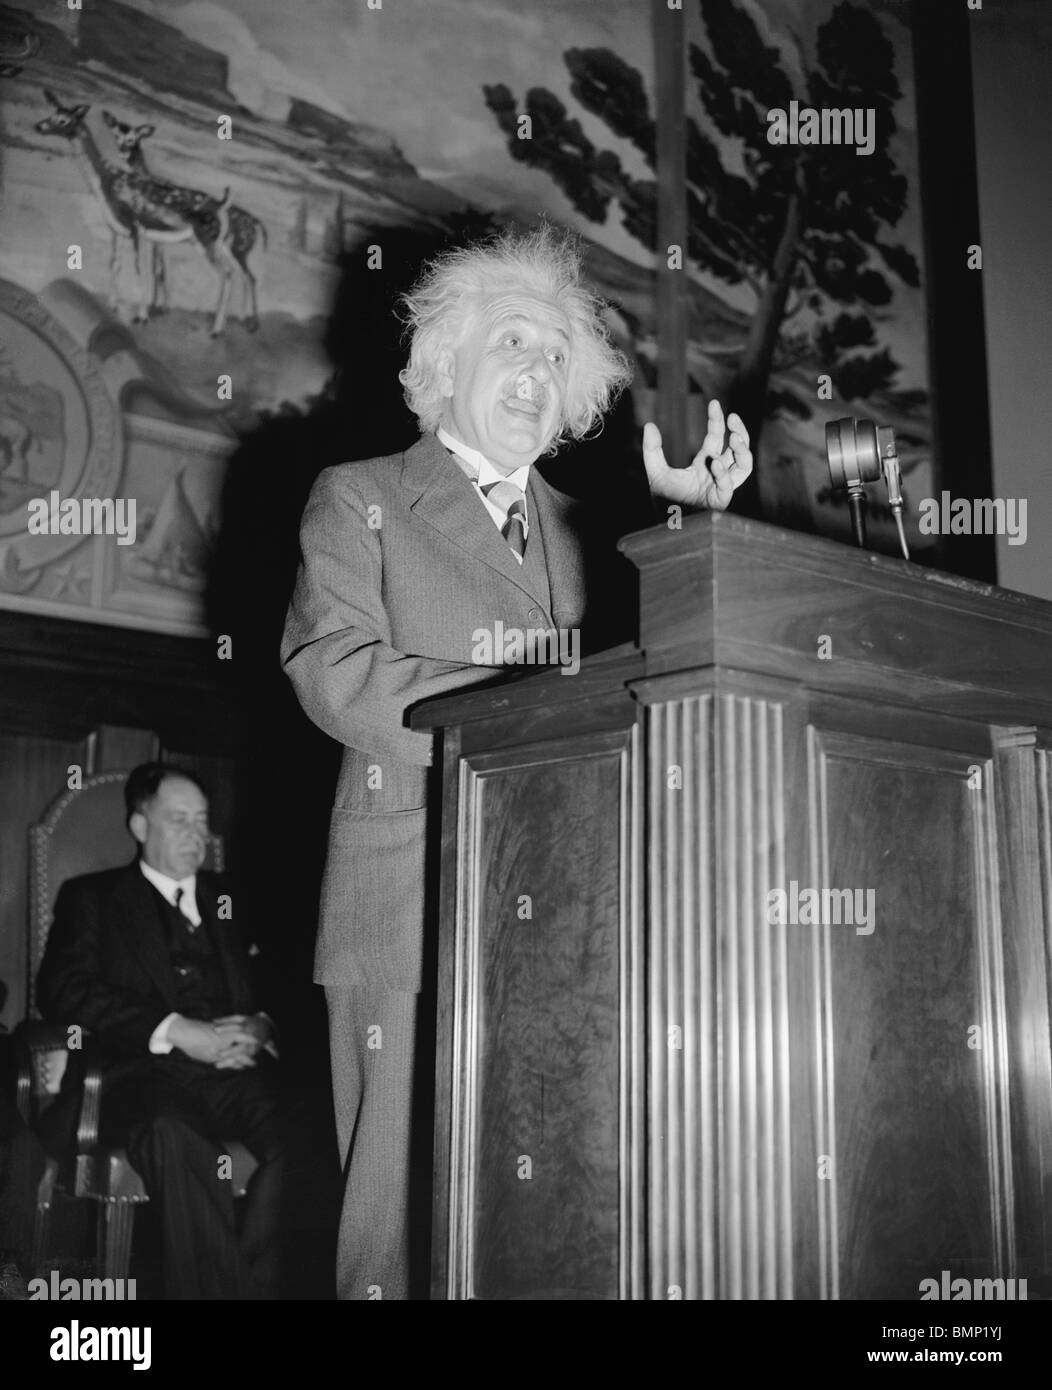 Photo of German theoretical physicist Albert Einstein (1879 - 1955) giving a speech in Washington DC in May 1940. - Stock Image